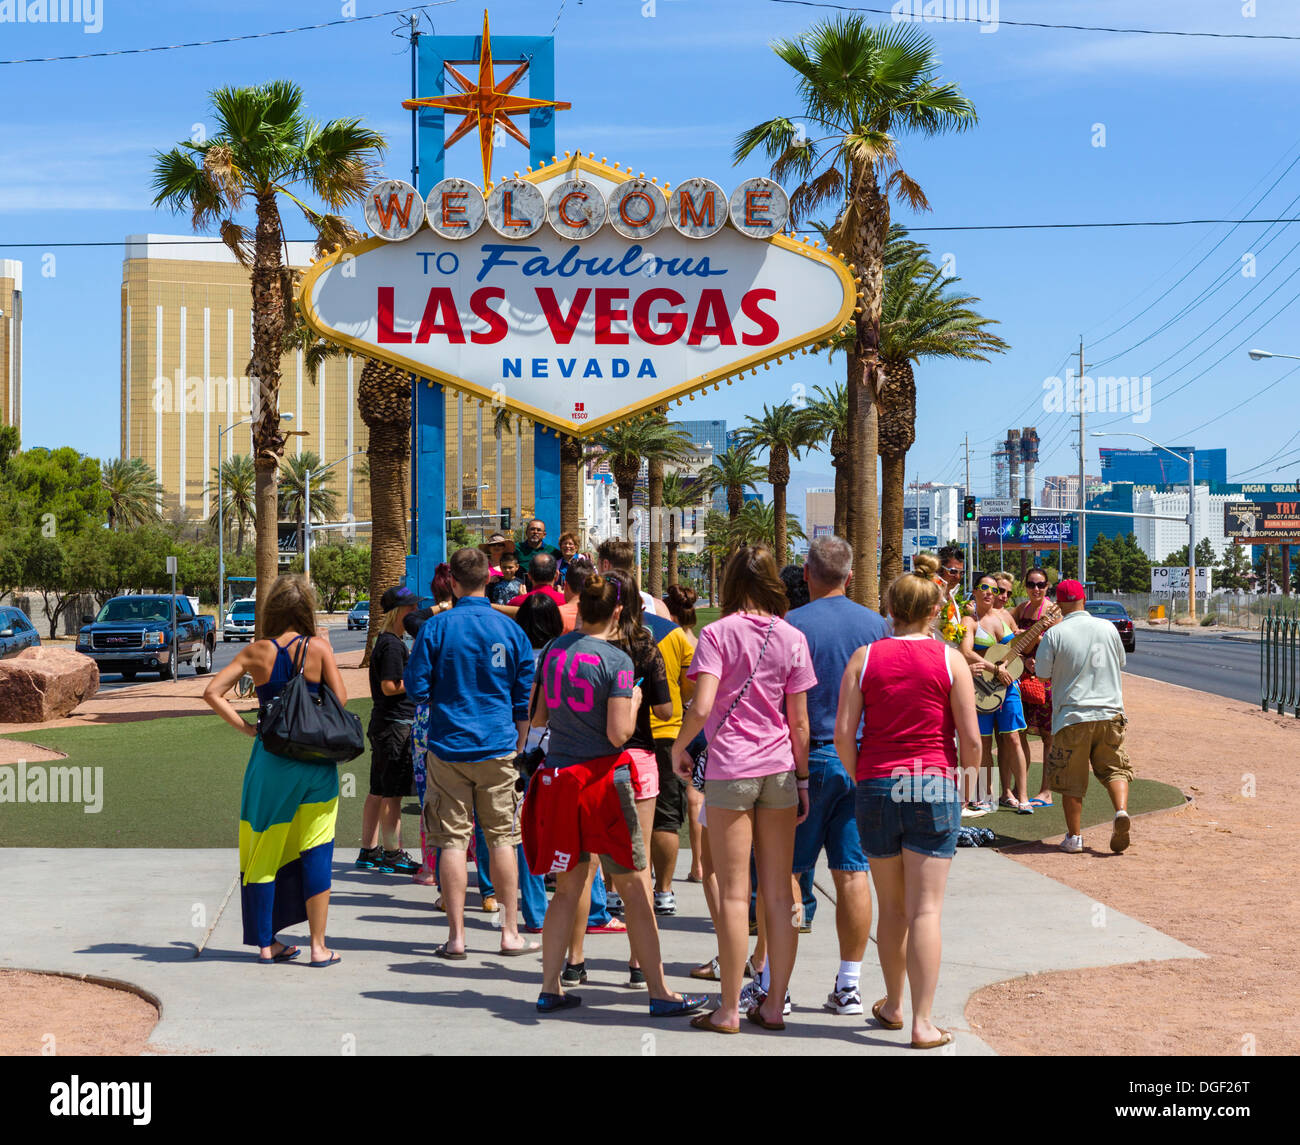 Tourists lining up to have a photo taken under the Welcome to Fabulous Las Vegas sign, Las Vegas, Nevada, USA - Stock Image